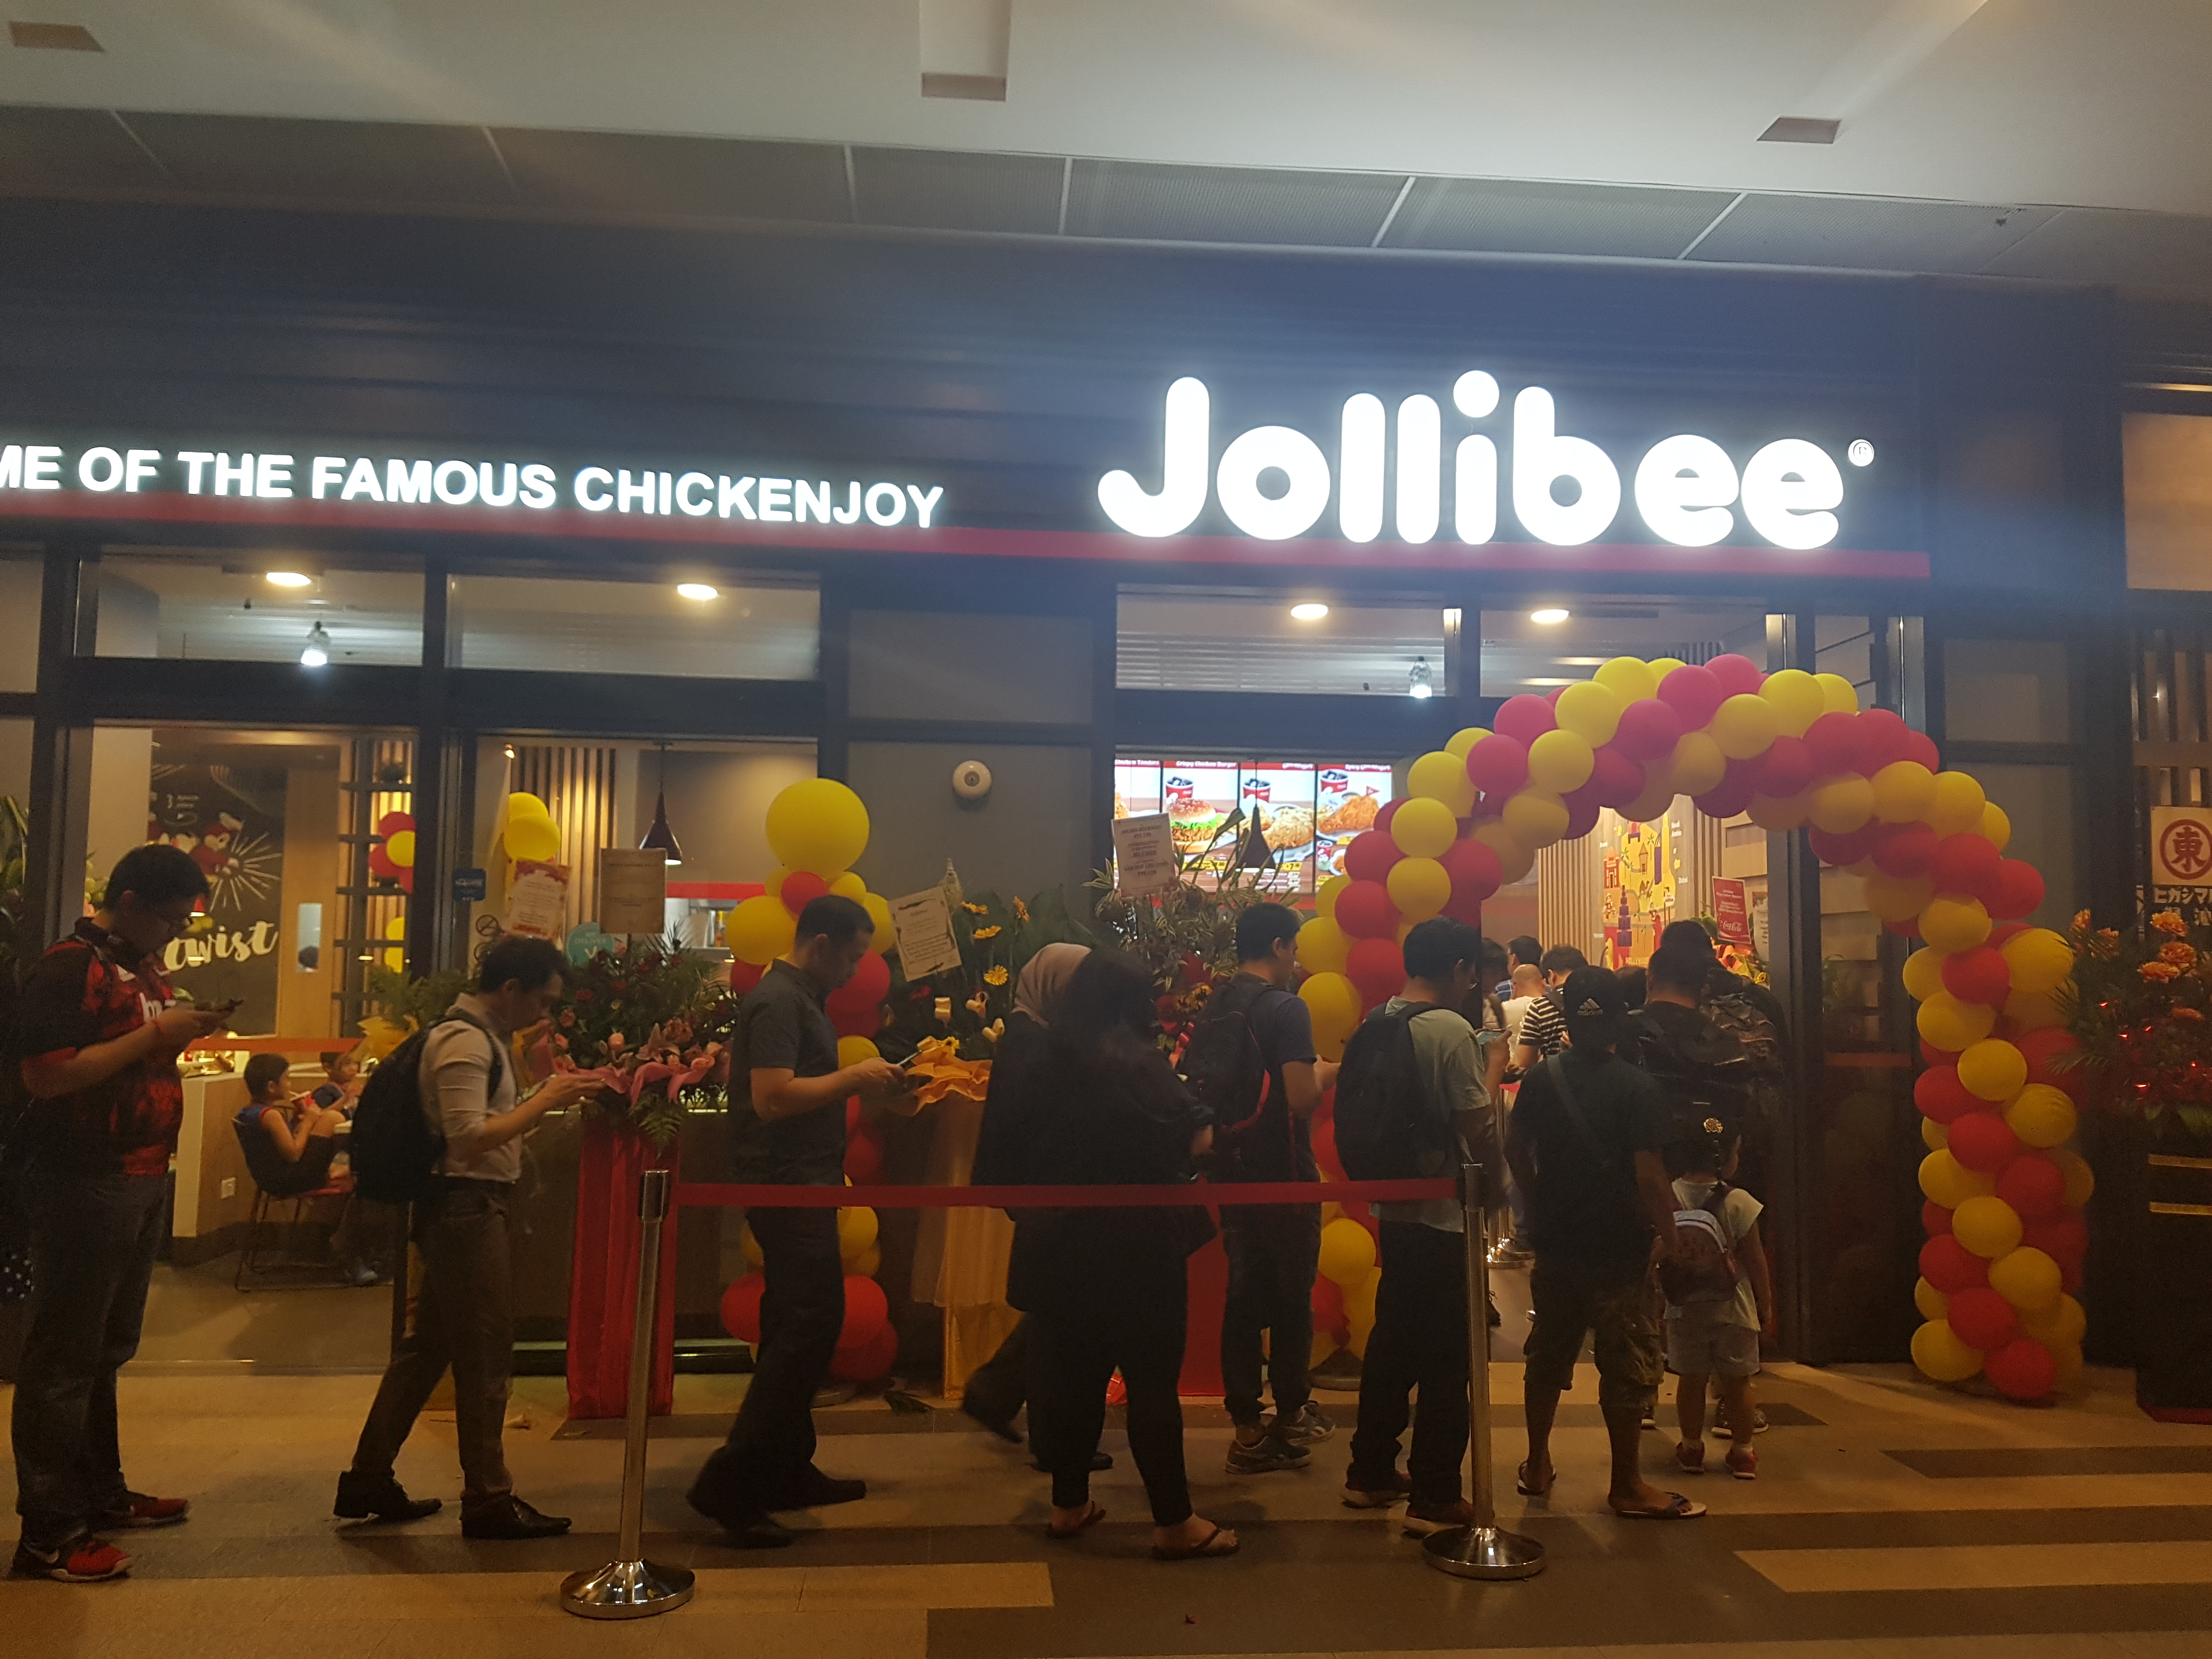 , Grand opening balloon decorations for Jollibee, Singapore Balloon Decoration Services - Balloon Workshop and Balloon Sculpting